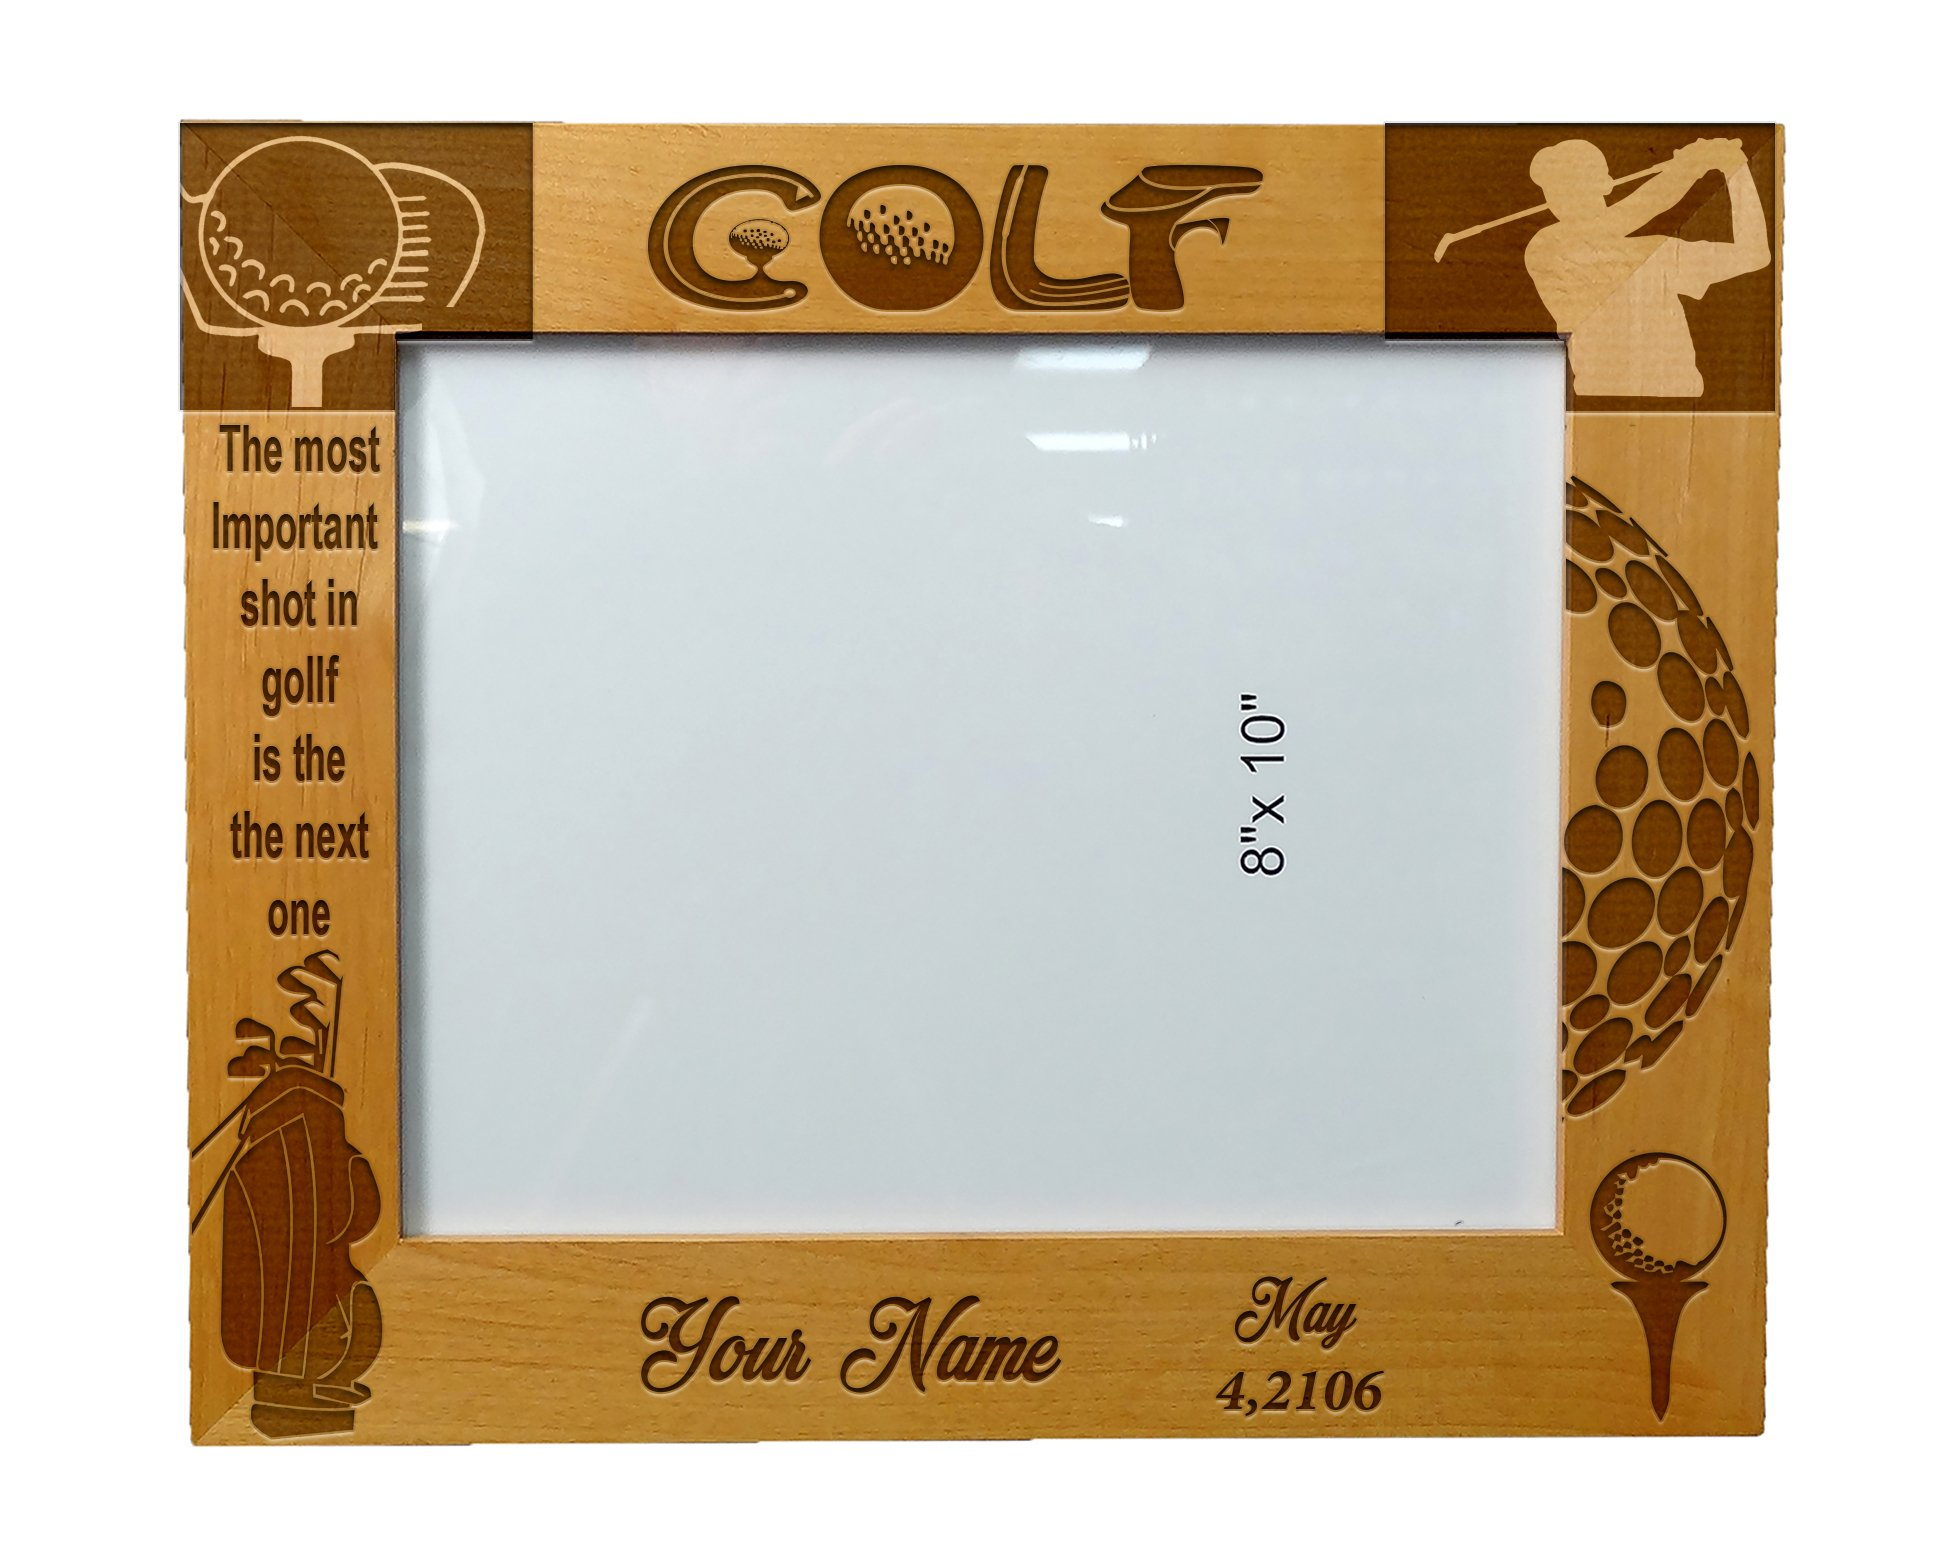 Personalized Laser Engraved Wooden Picture Frame 8'' x 10''Golfer Design by PRANA